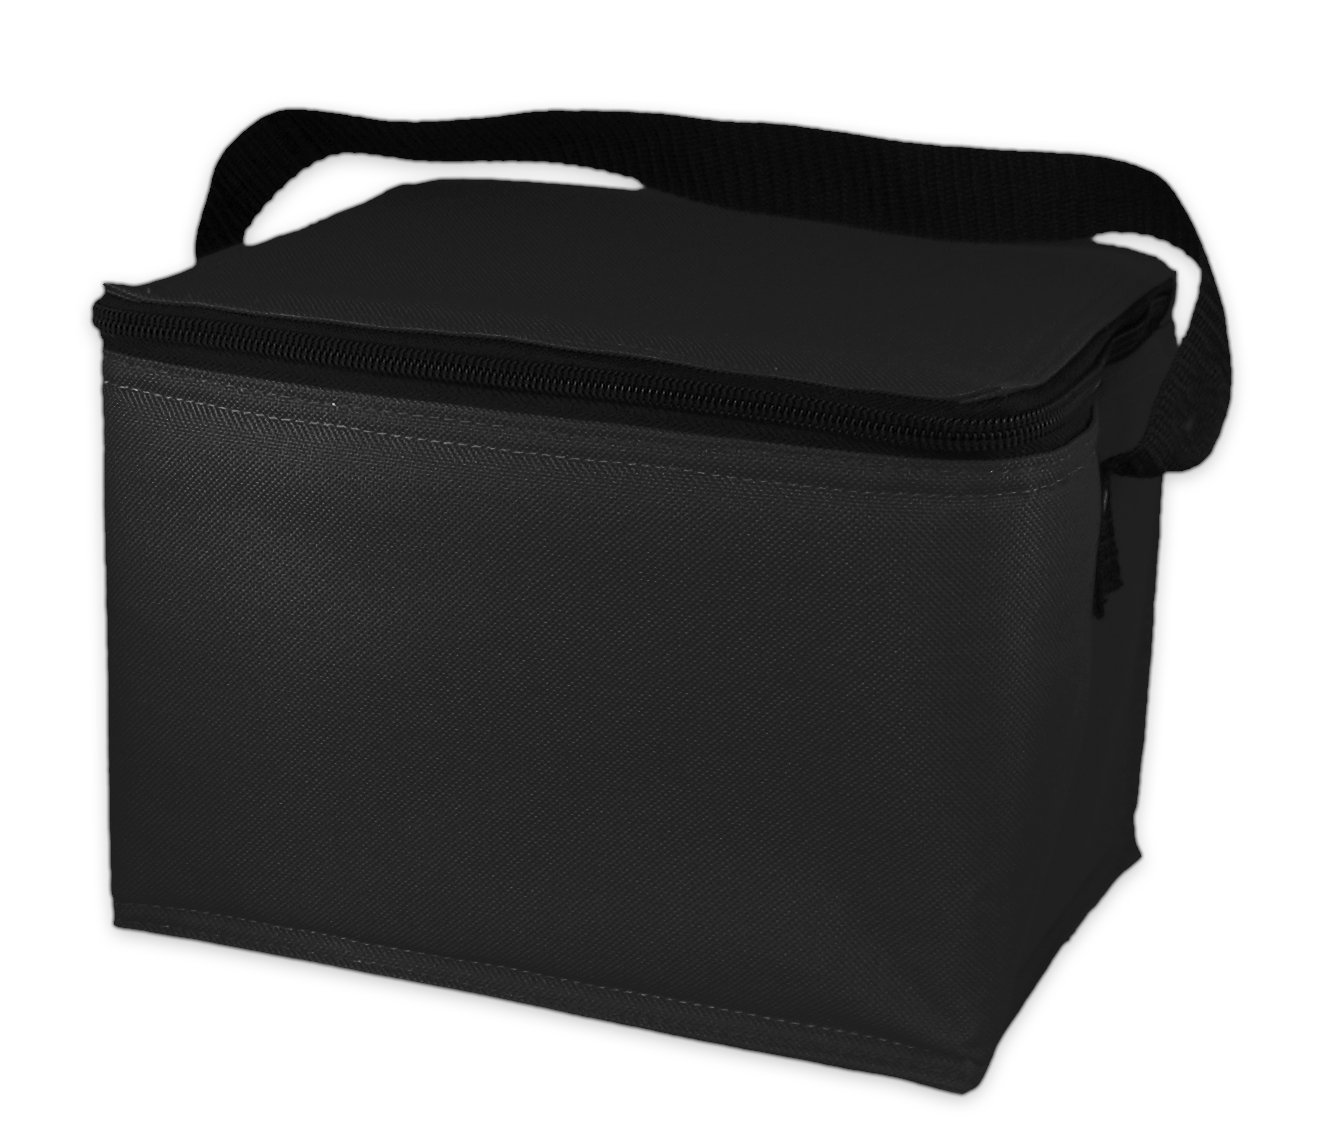 EasyLunchboxes Insulated Lunch Box Cooler Bag, Black